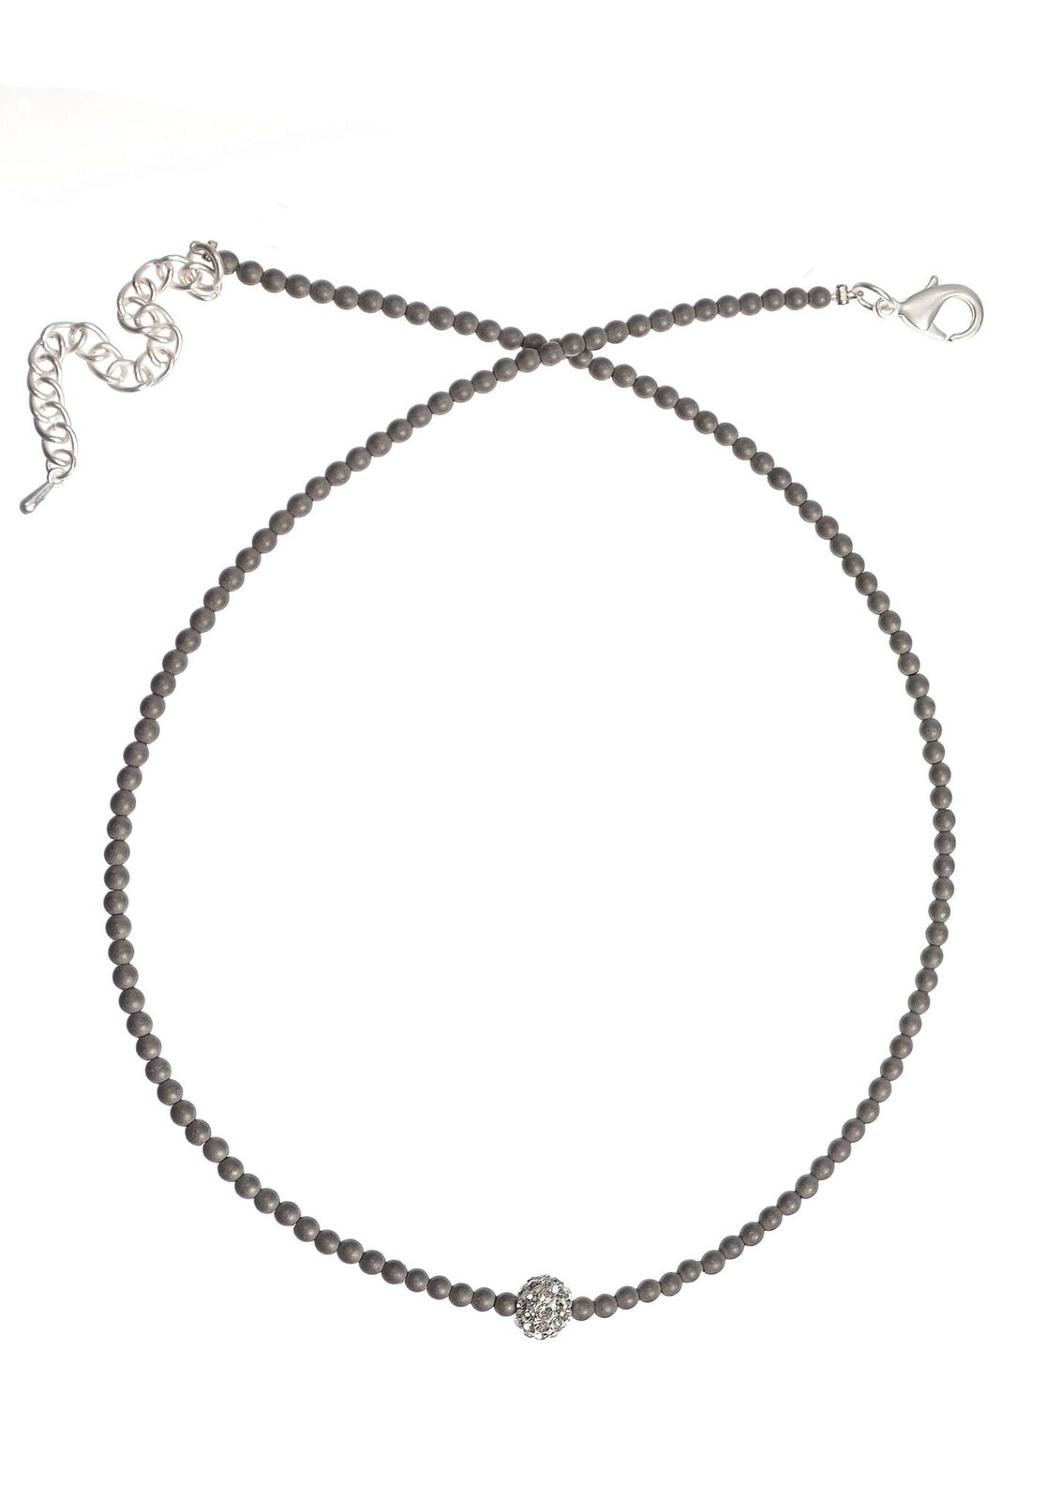 Hot tomato - Mini mineral bead w/crystal rondelle necklace - Pewter